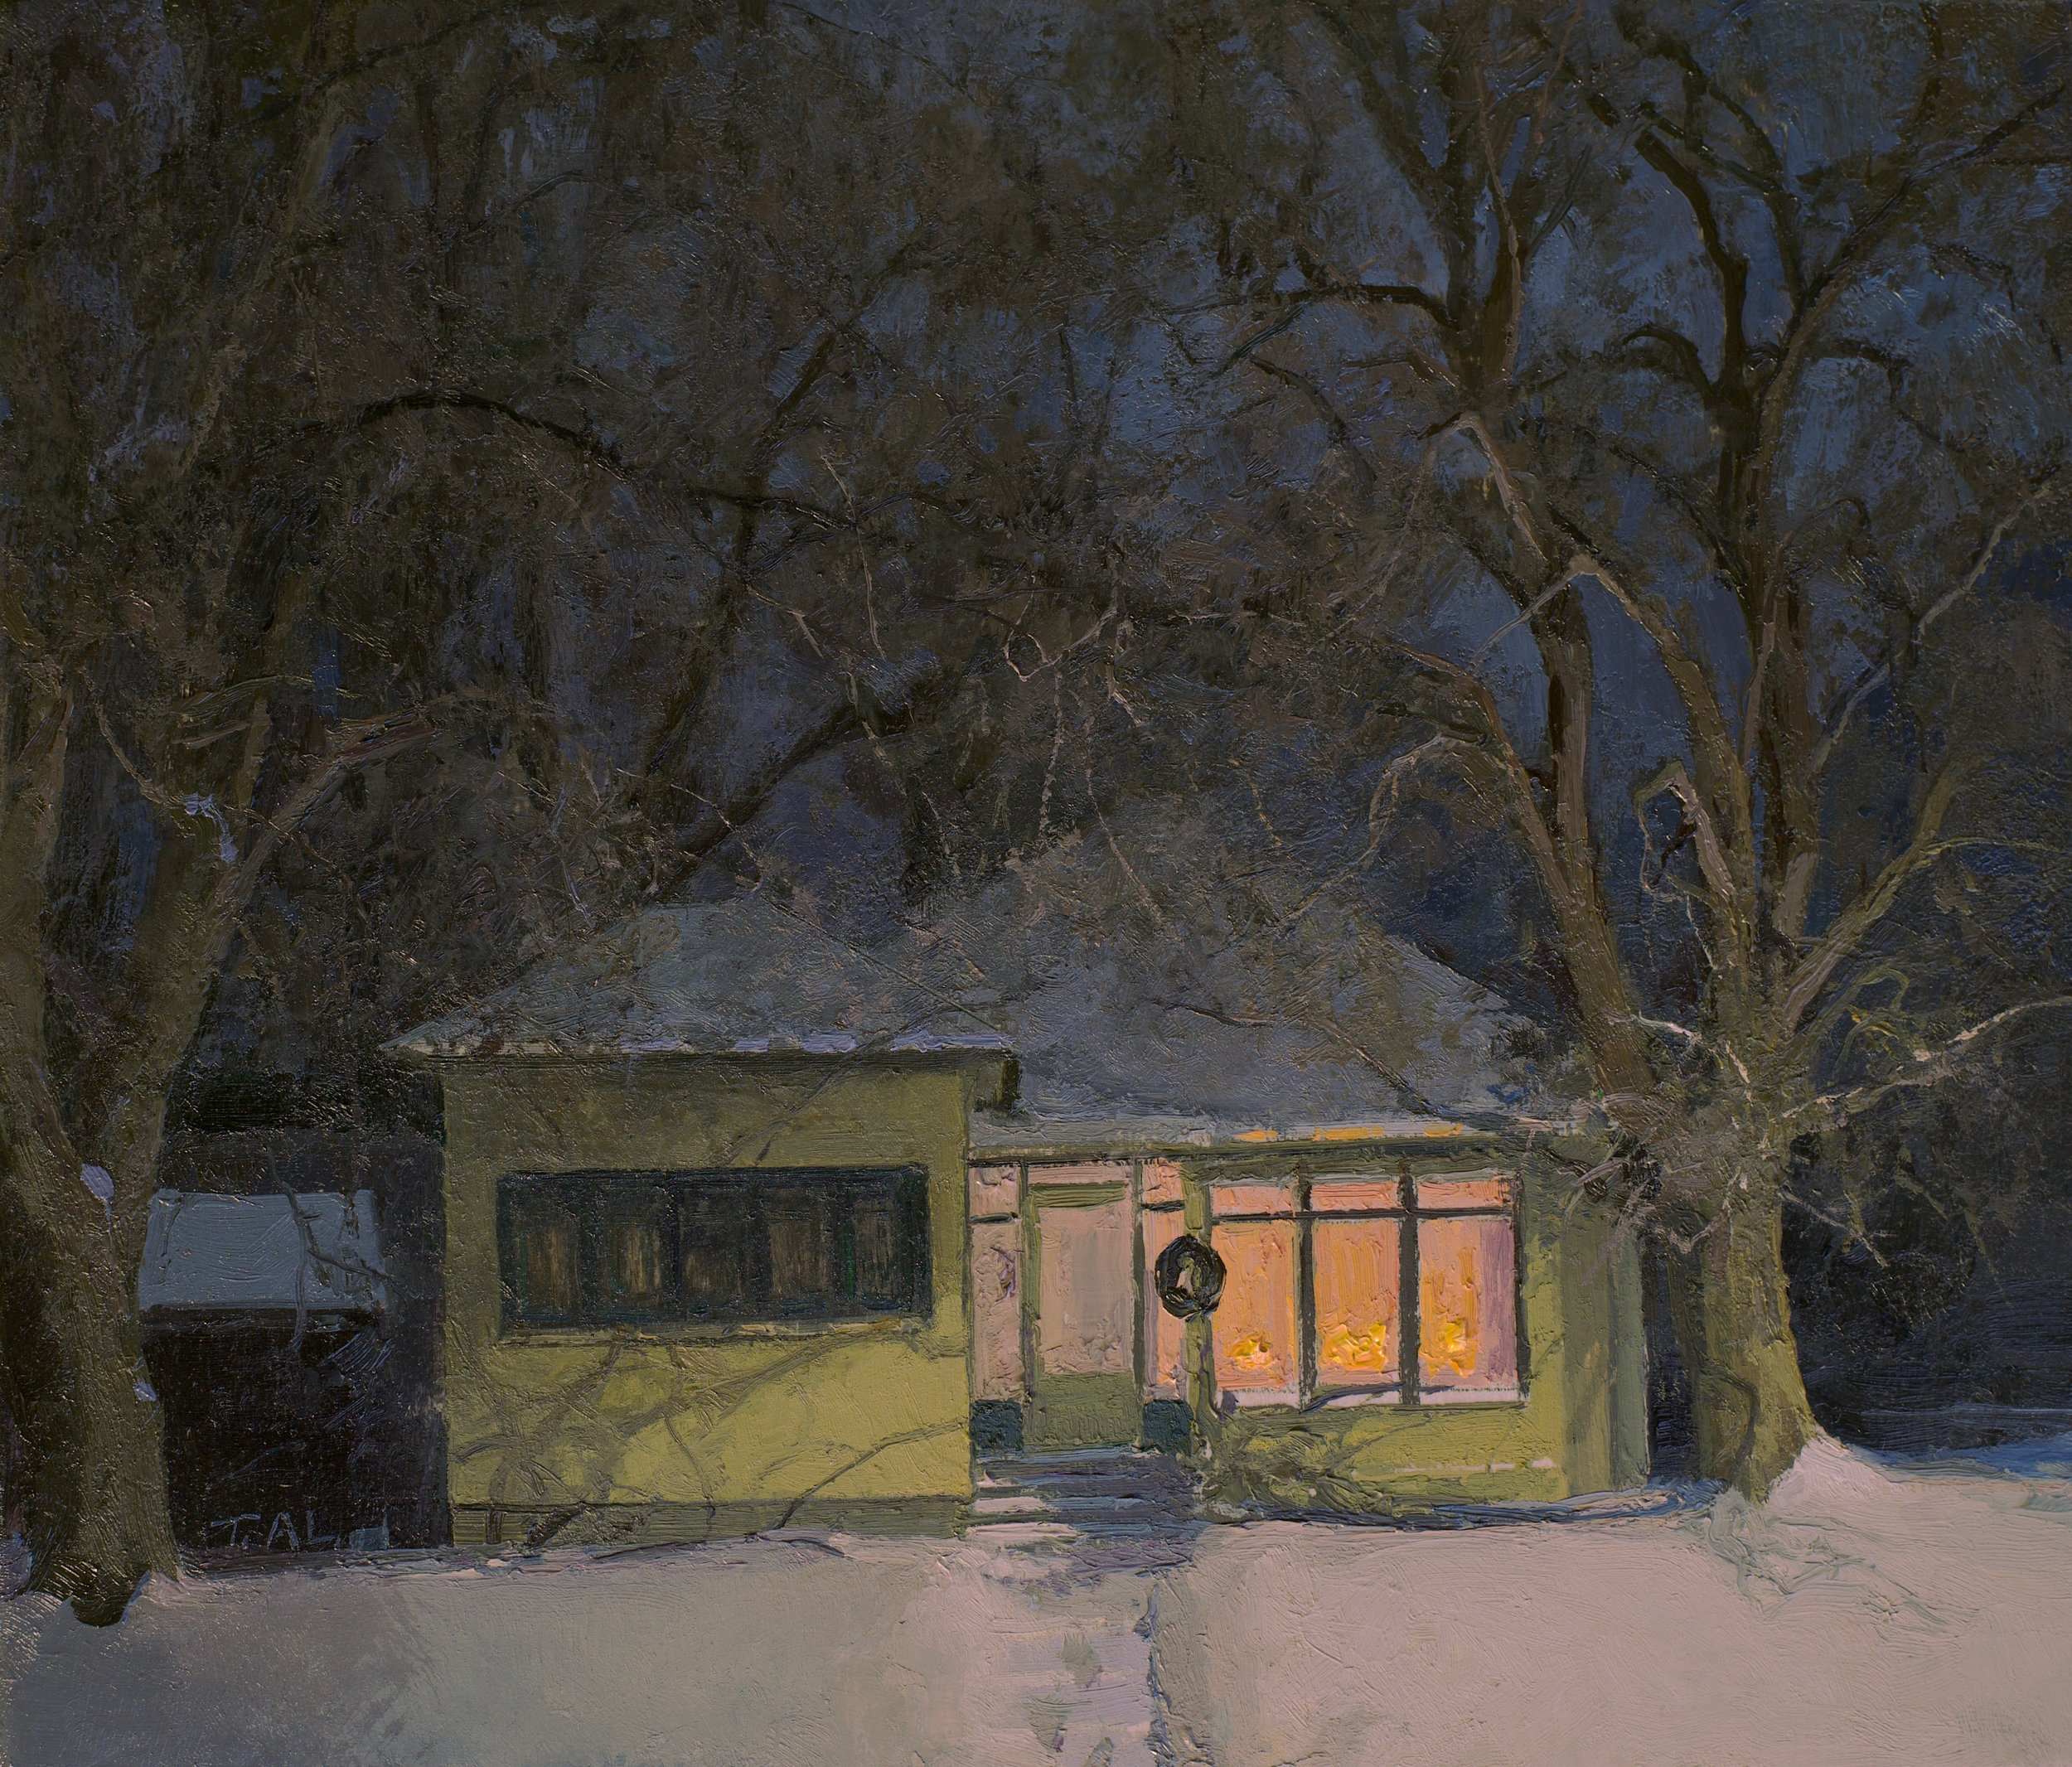 A Night For Caroling, oil on panel, 9 x 10.5 in.